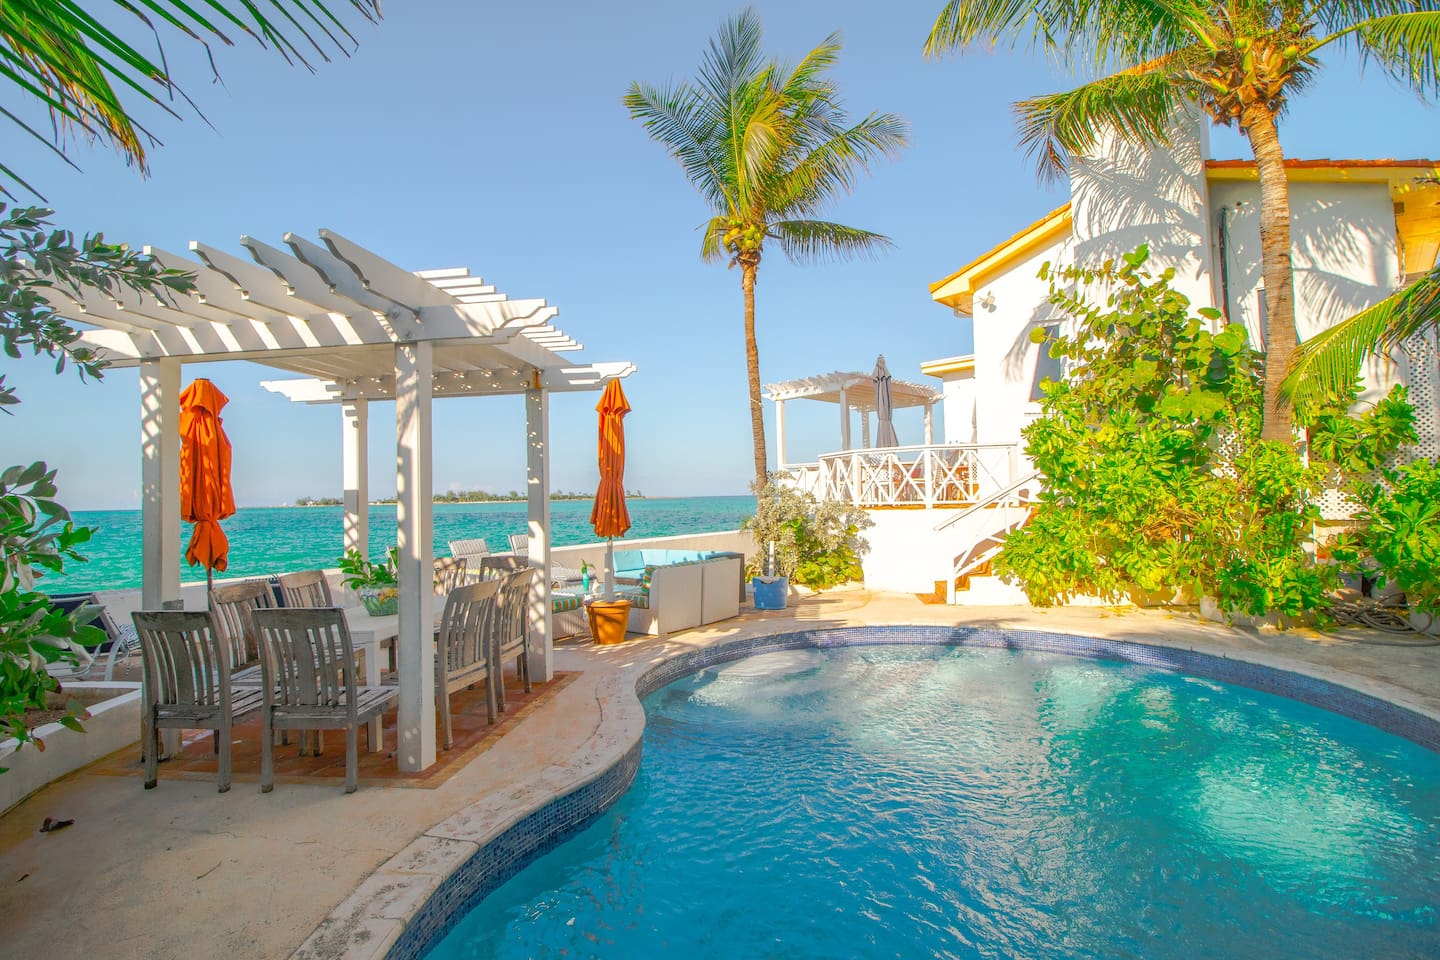 step straight from the pool into the sea and then back into the pool! Private and secluded